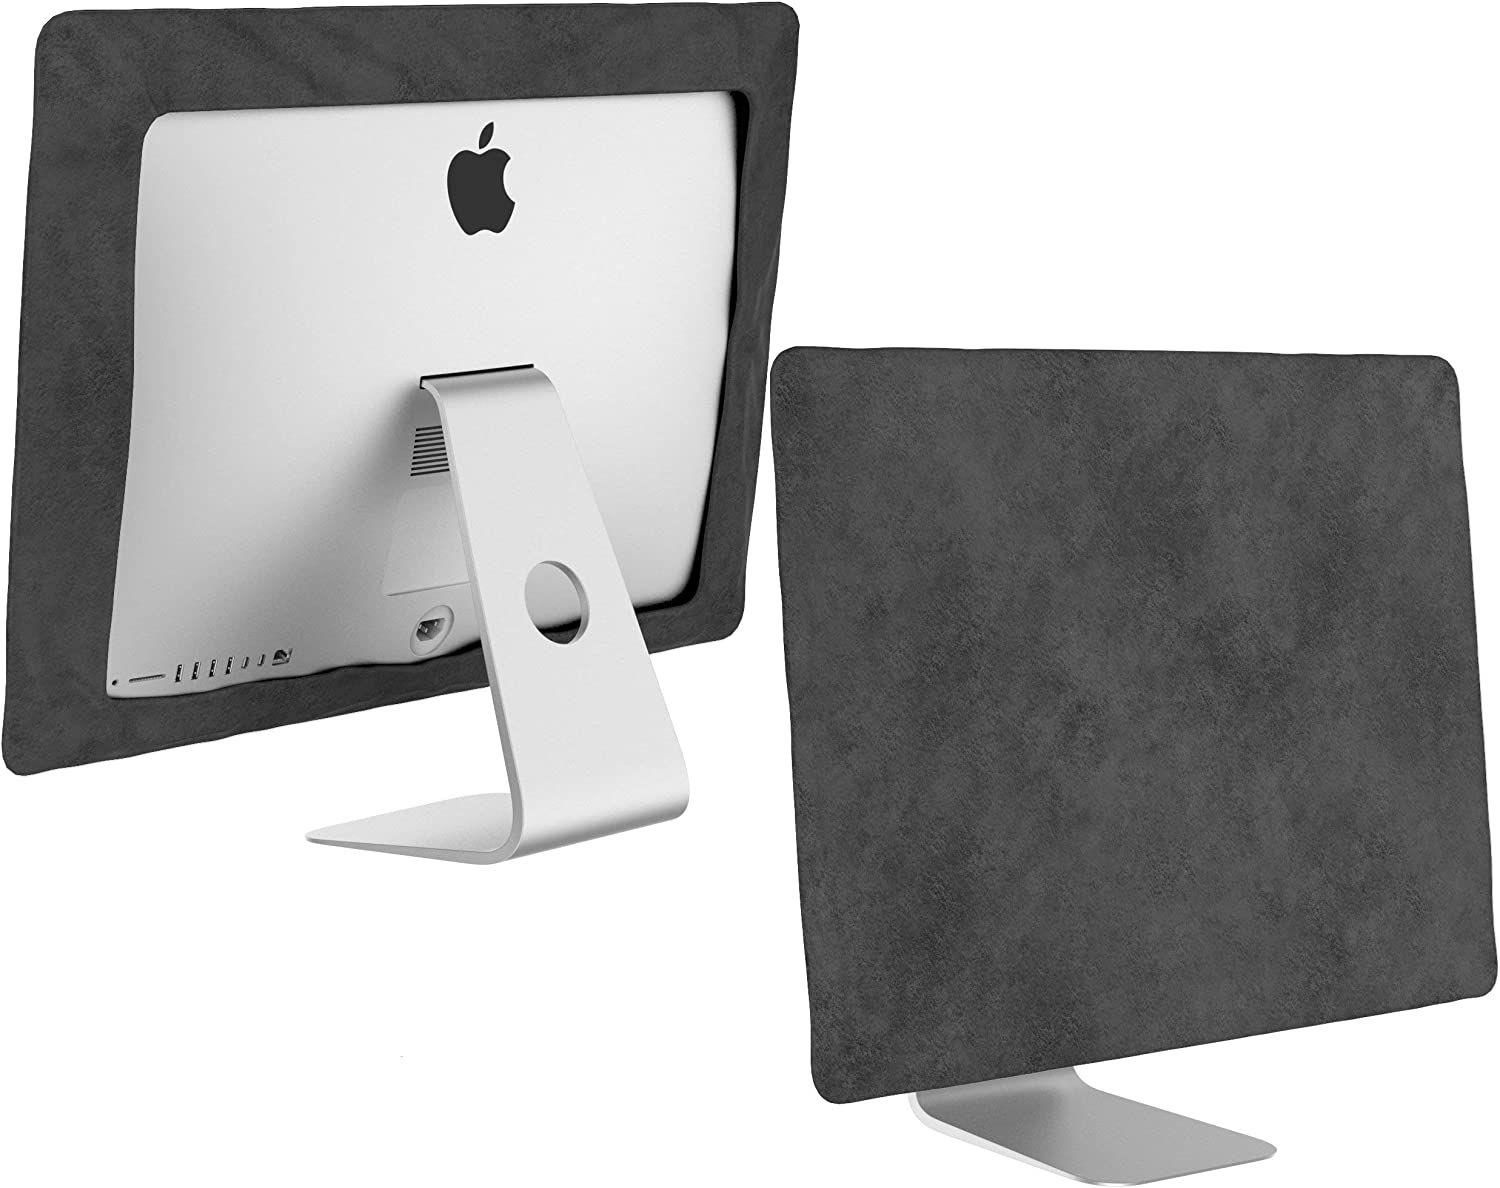 Kuzy - iMac 27 inch Monitor Cover, Apple Desktop Computer Screen Protector Sleeve Models A1862, A1419, A1312 Newest Version Retina 5K Mac Pro Protection from Dust and Fingerprints - Gray